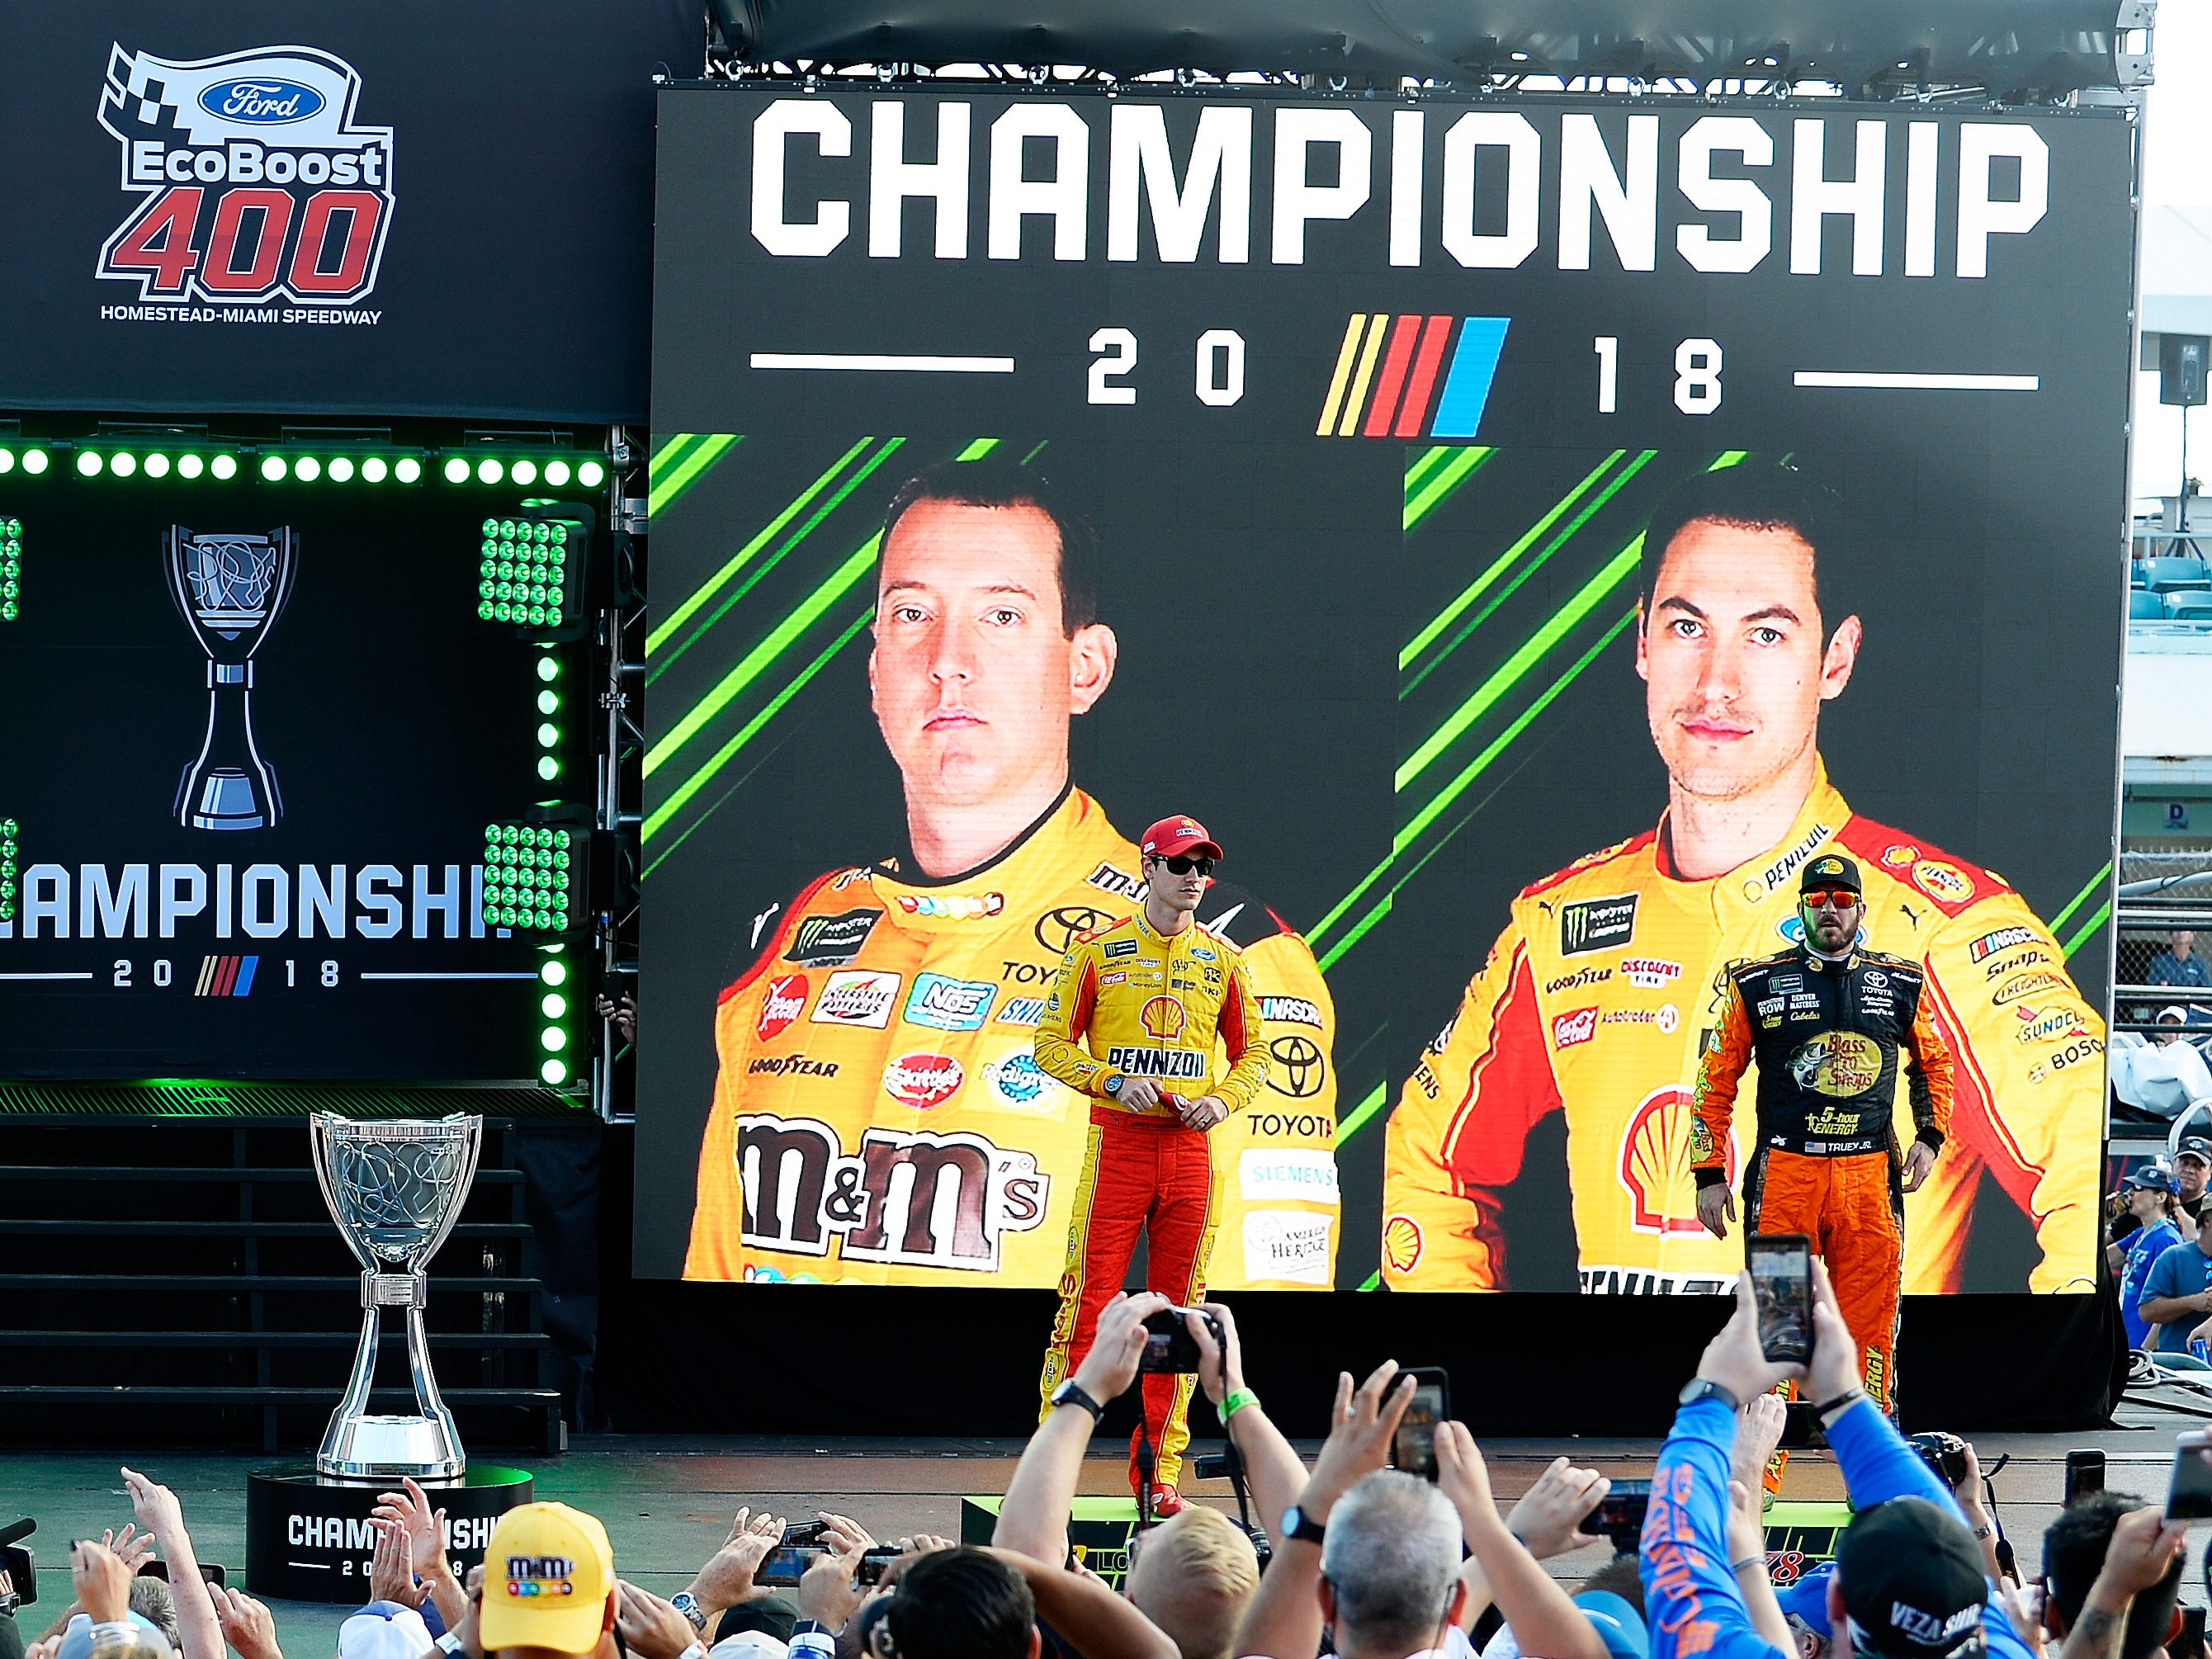 Championship contenders Joey Logano, left, and Martin Truex Jr., right, are introduced to the crowd at Homestead-Miami Speedway.